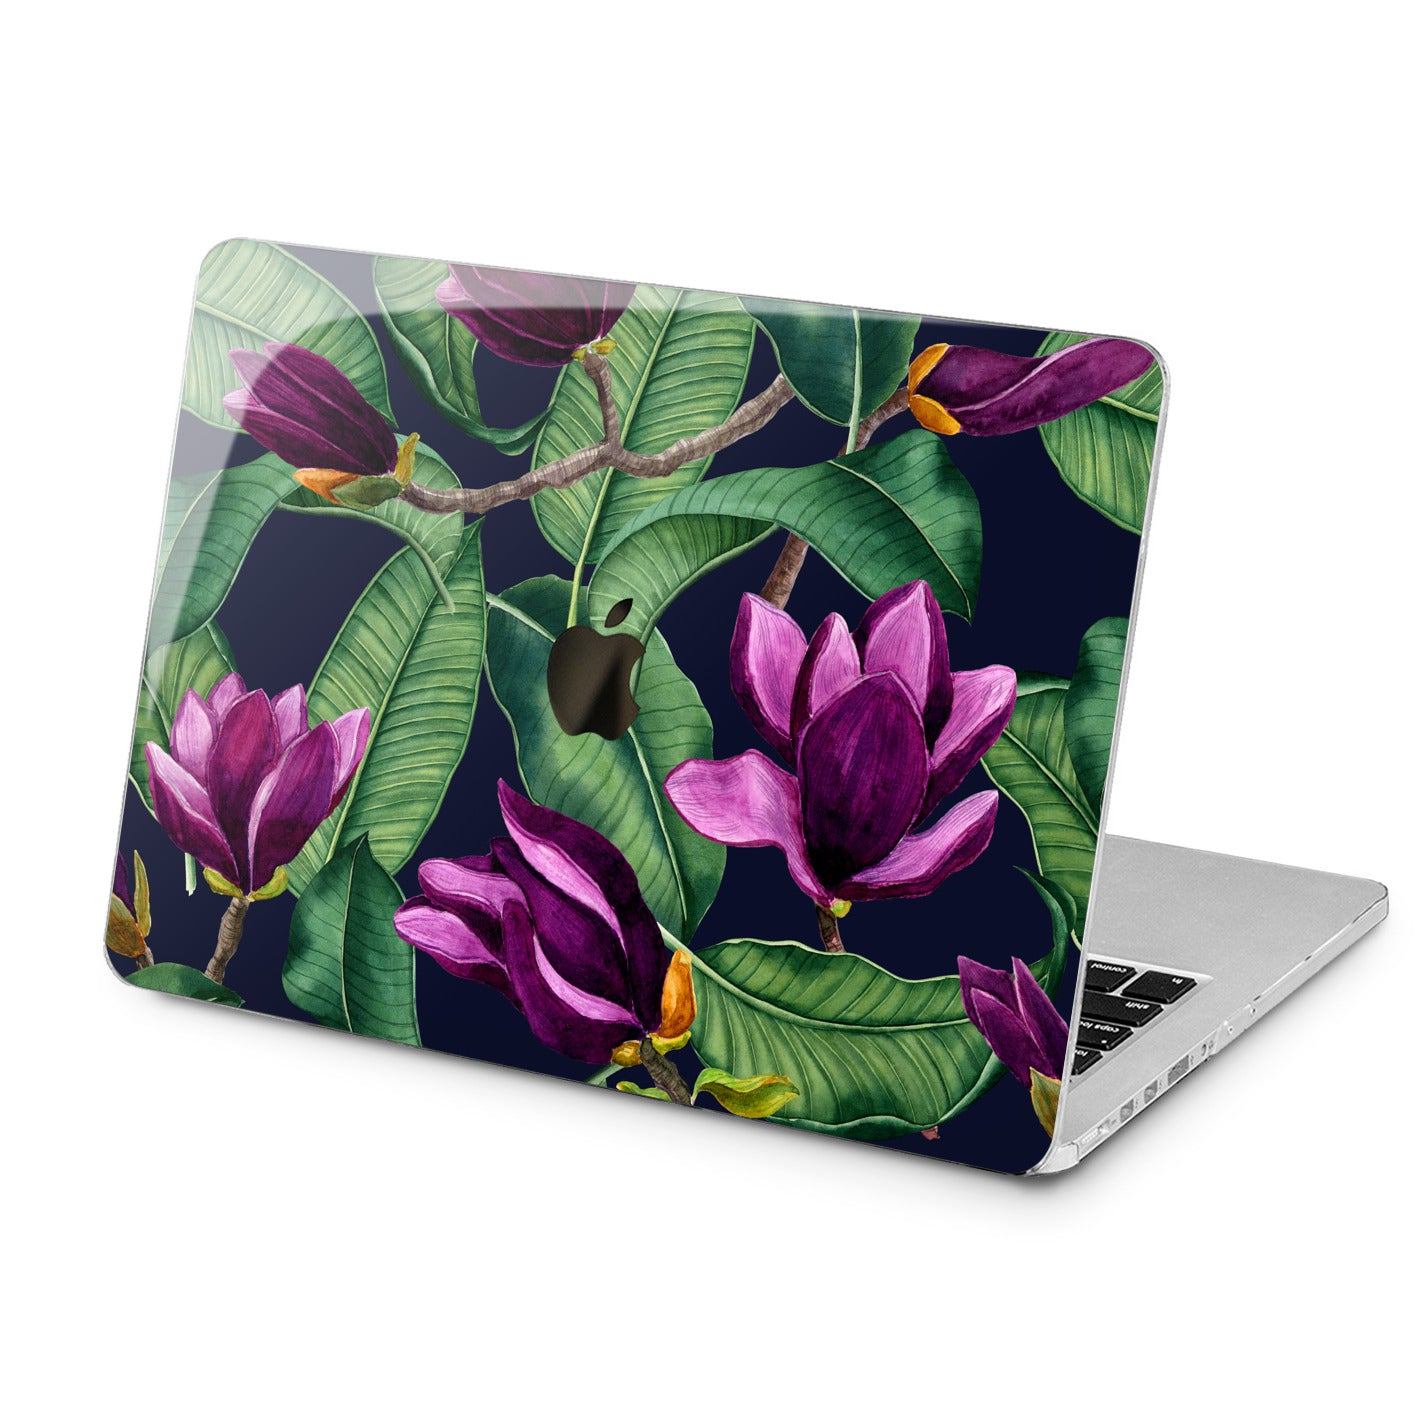 Lex Altern Lex Altern Purple Magnolia Case for your Laptop Apple Macbook.